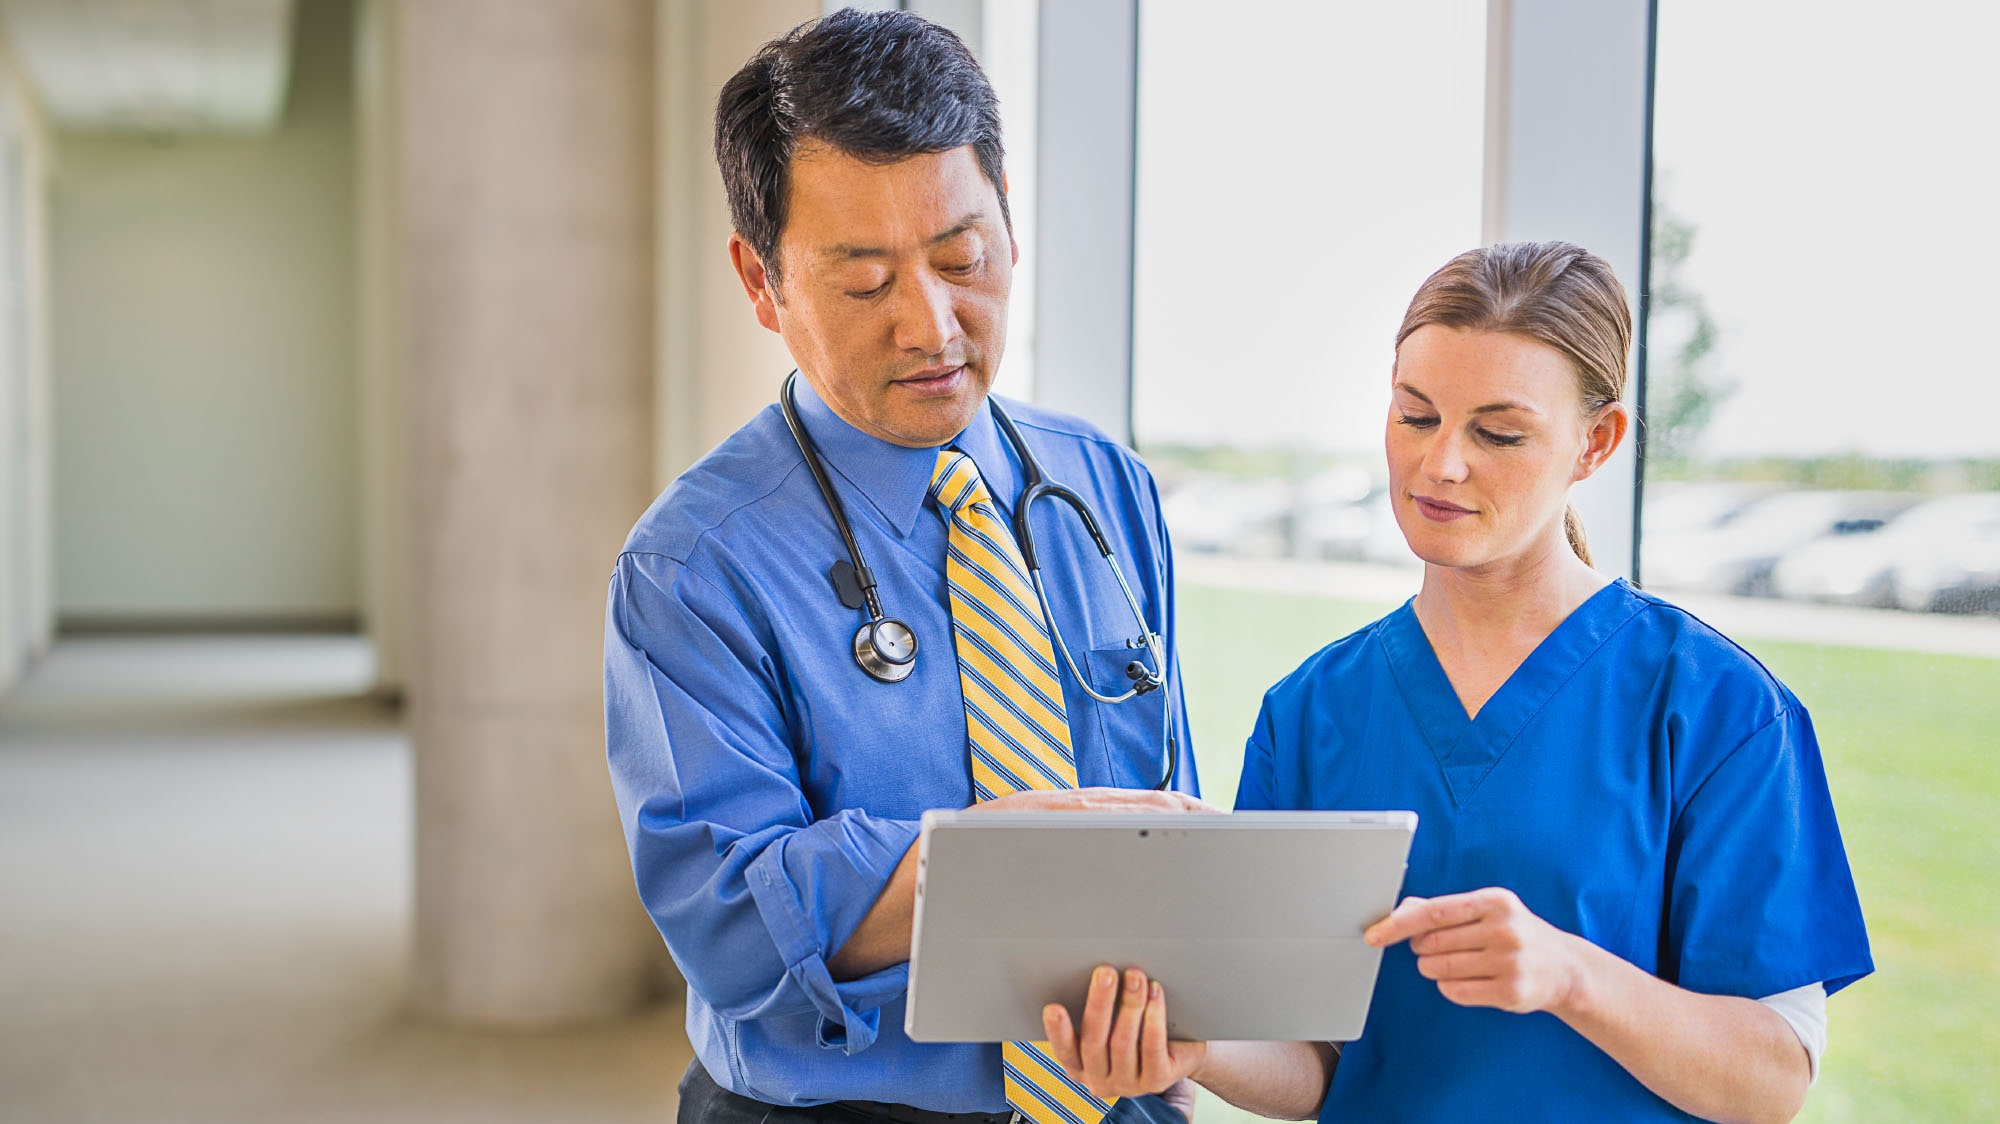 How Data Integration Can Improve Health Care Outcomes